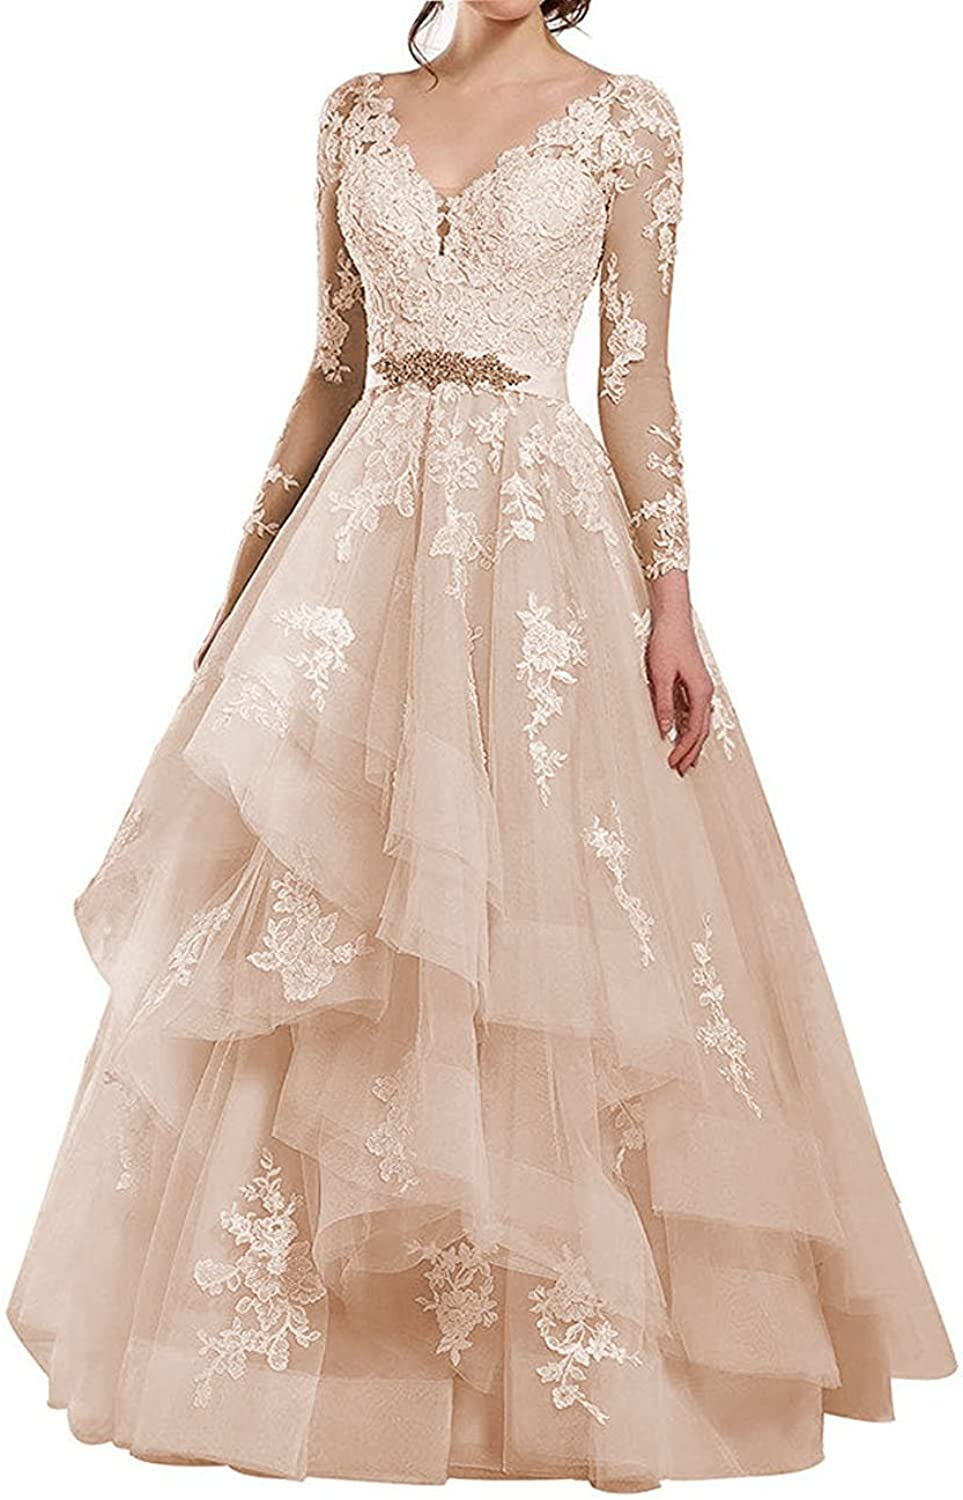 Cdress Sheer Long Sleeves Lace  Wedding Dresses VNeck Beaded Sashes Bridal Gowns